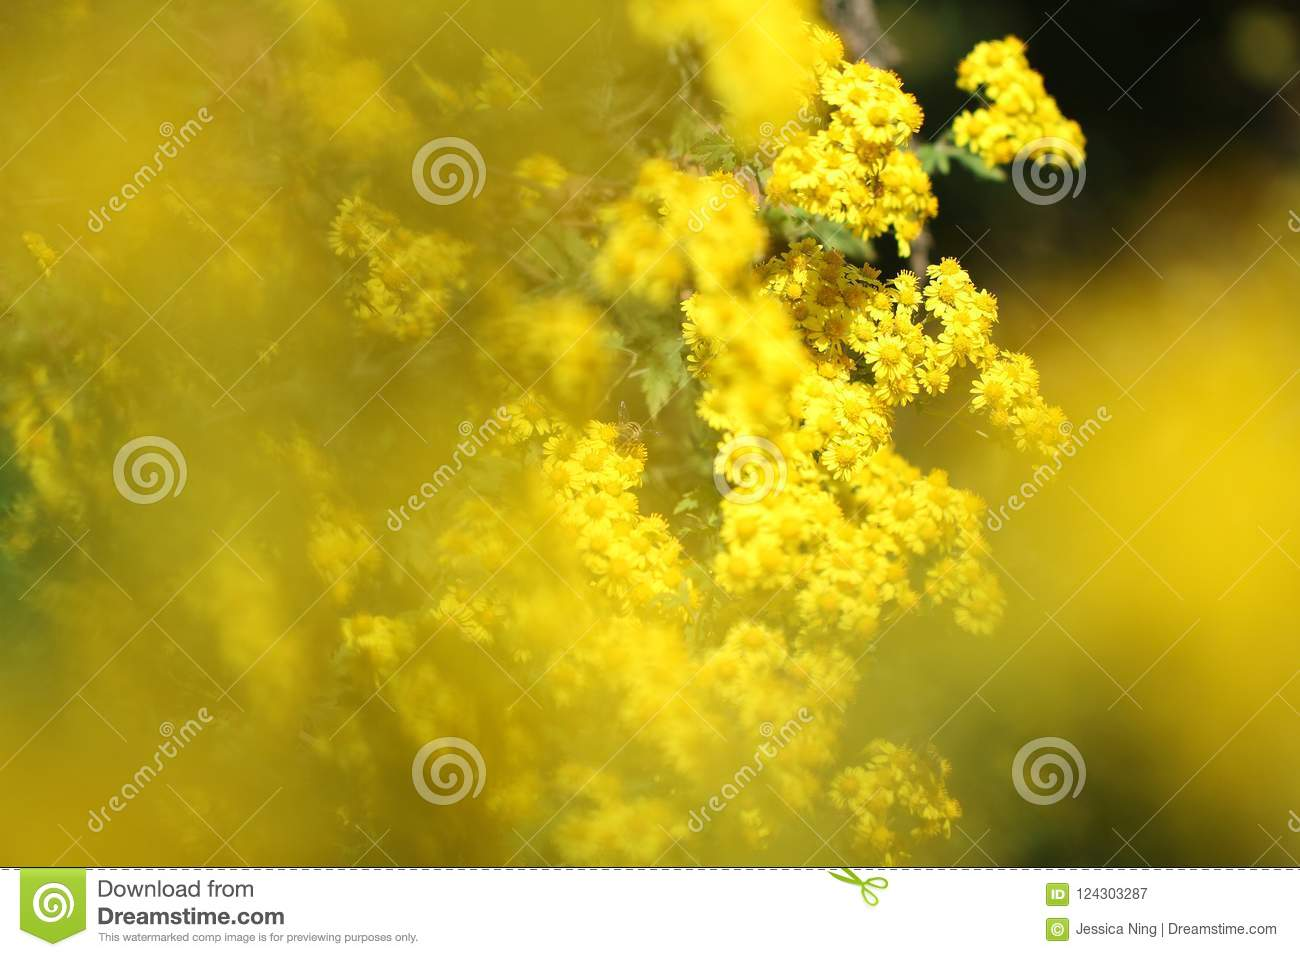 Brilliant wild yellow little daisy flowers in autumn stock image download brilliant wild yellow little daisy flowers in autumn stock image image of flower izmirmasajfo